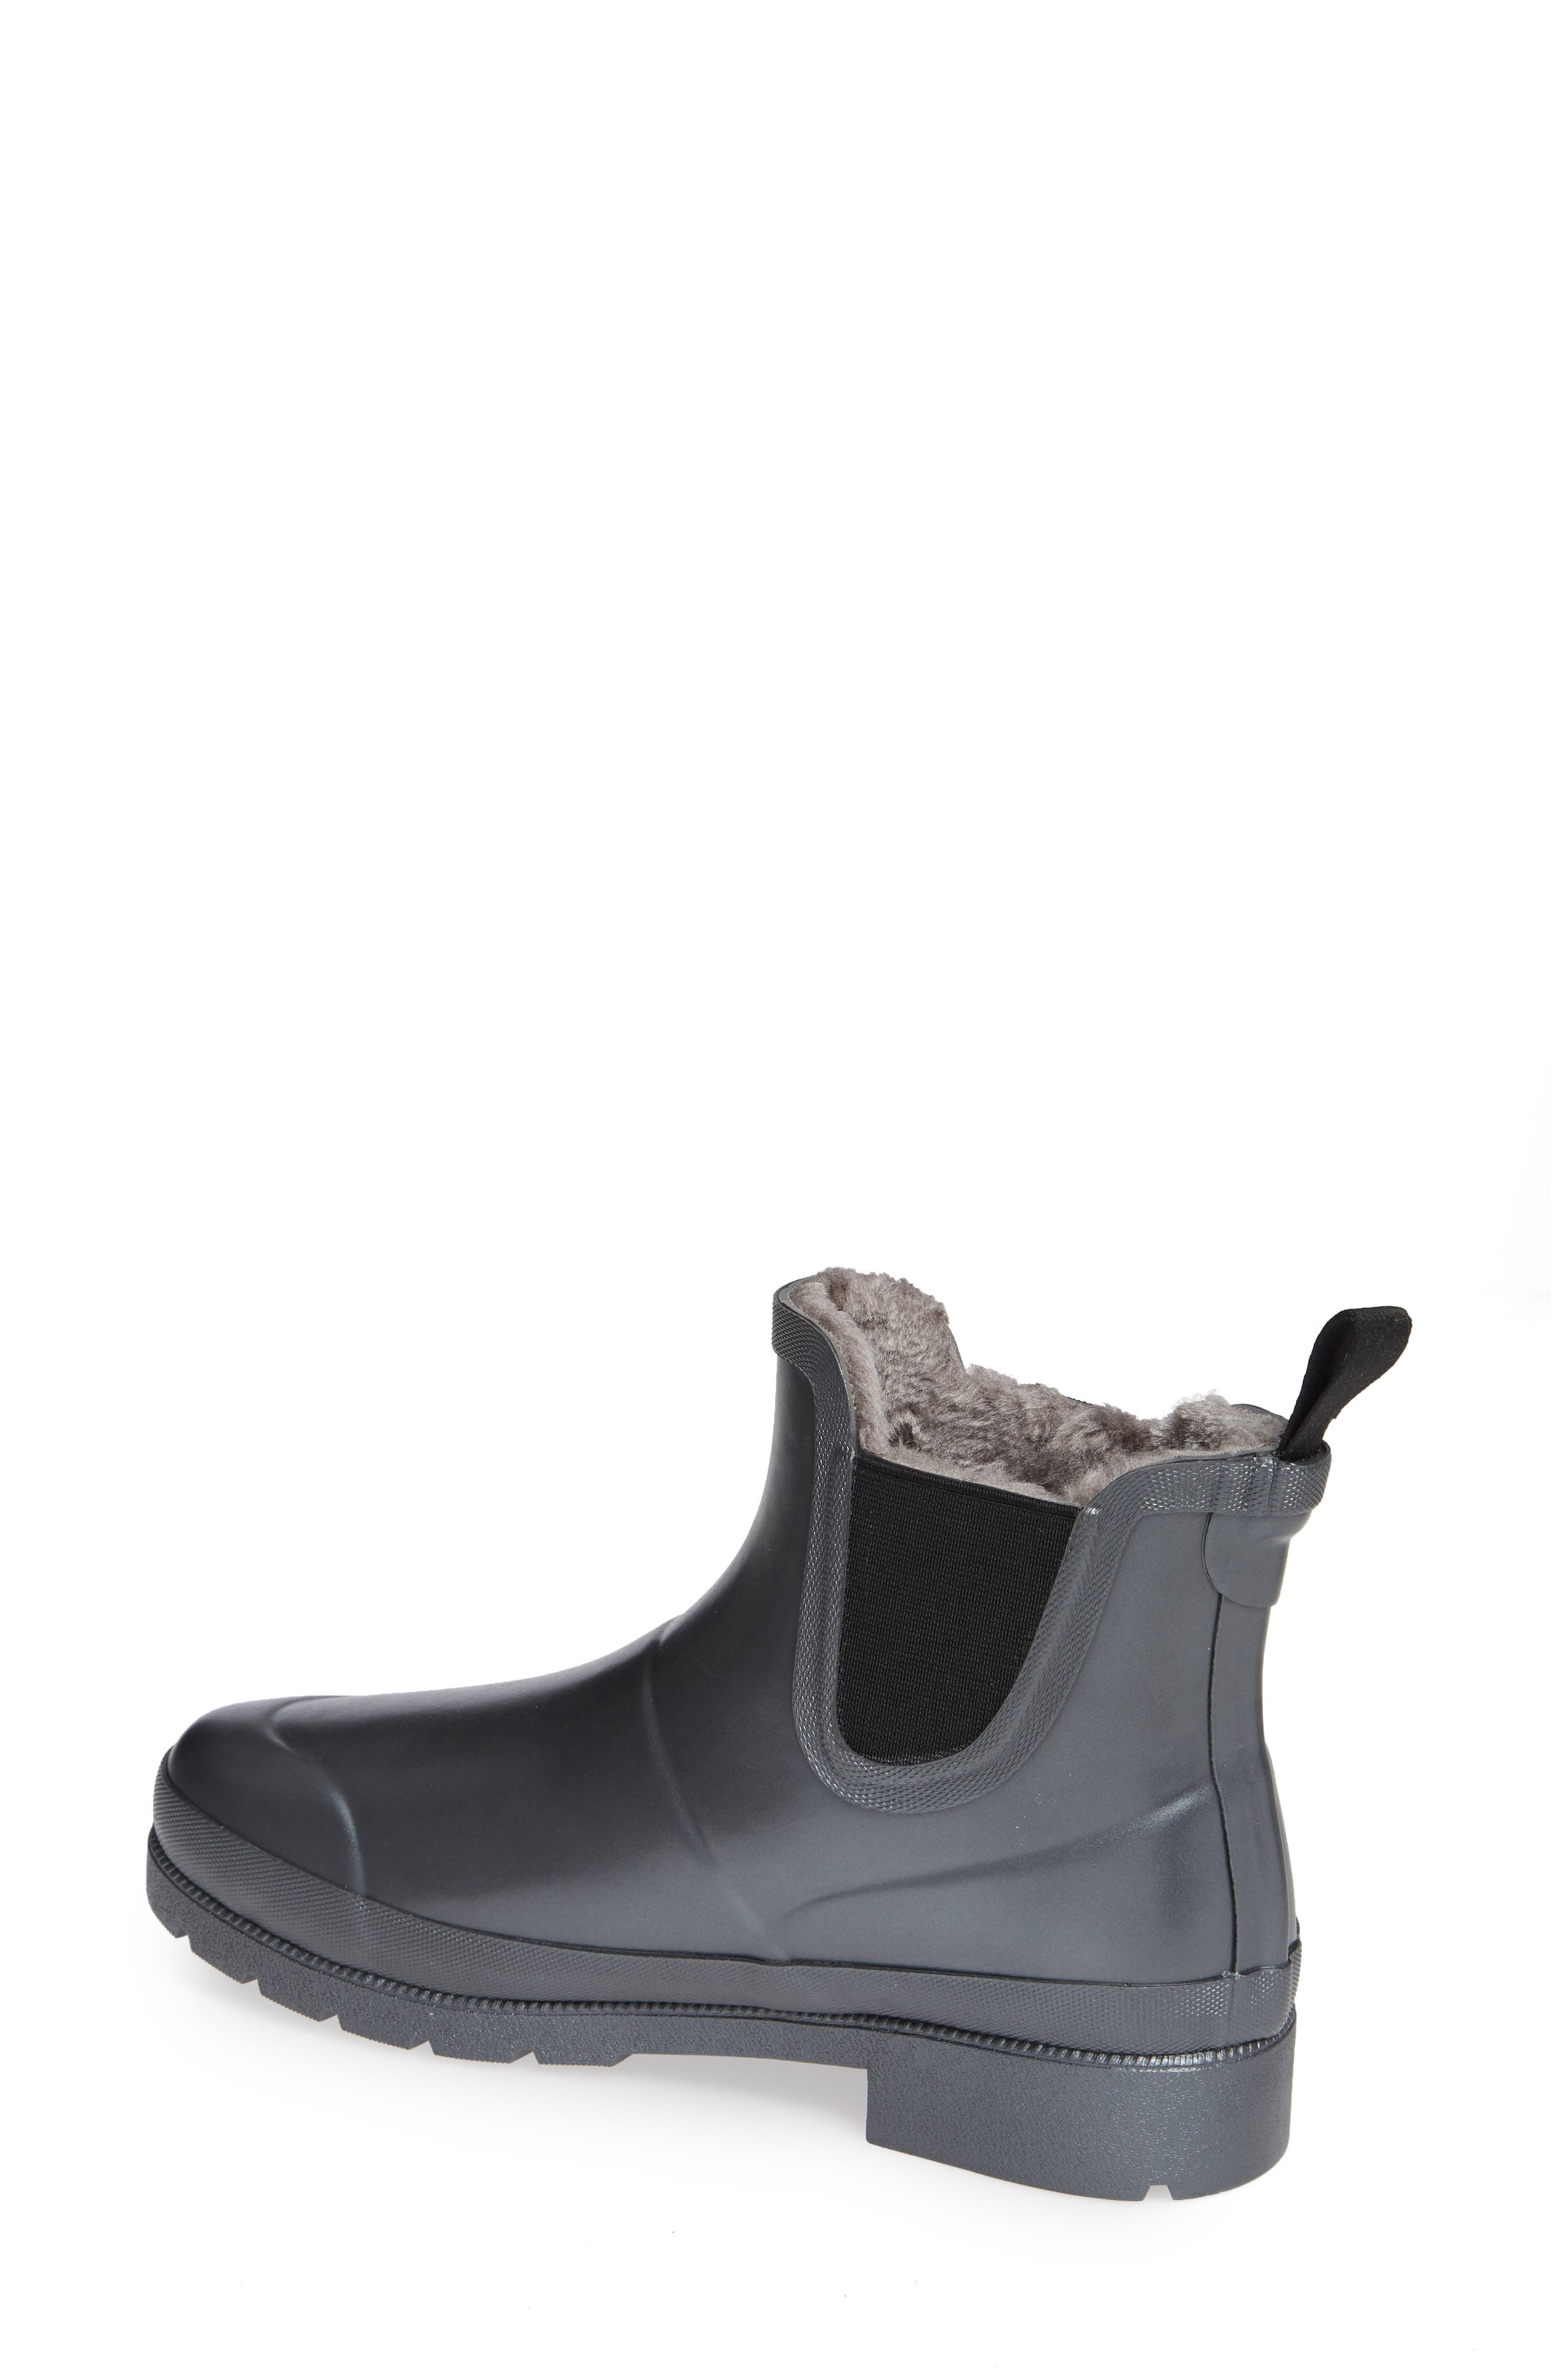 Chelsea Rain Boot,                             Alternate thumbnail 2, color,                             PEWTER